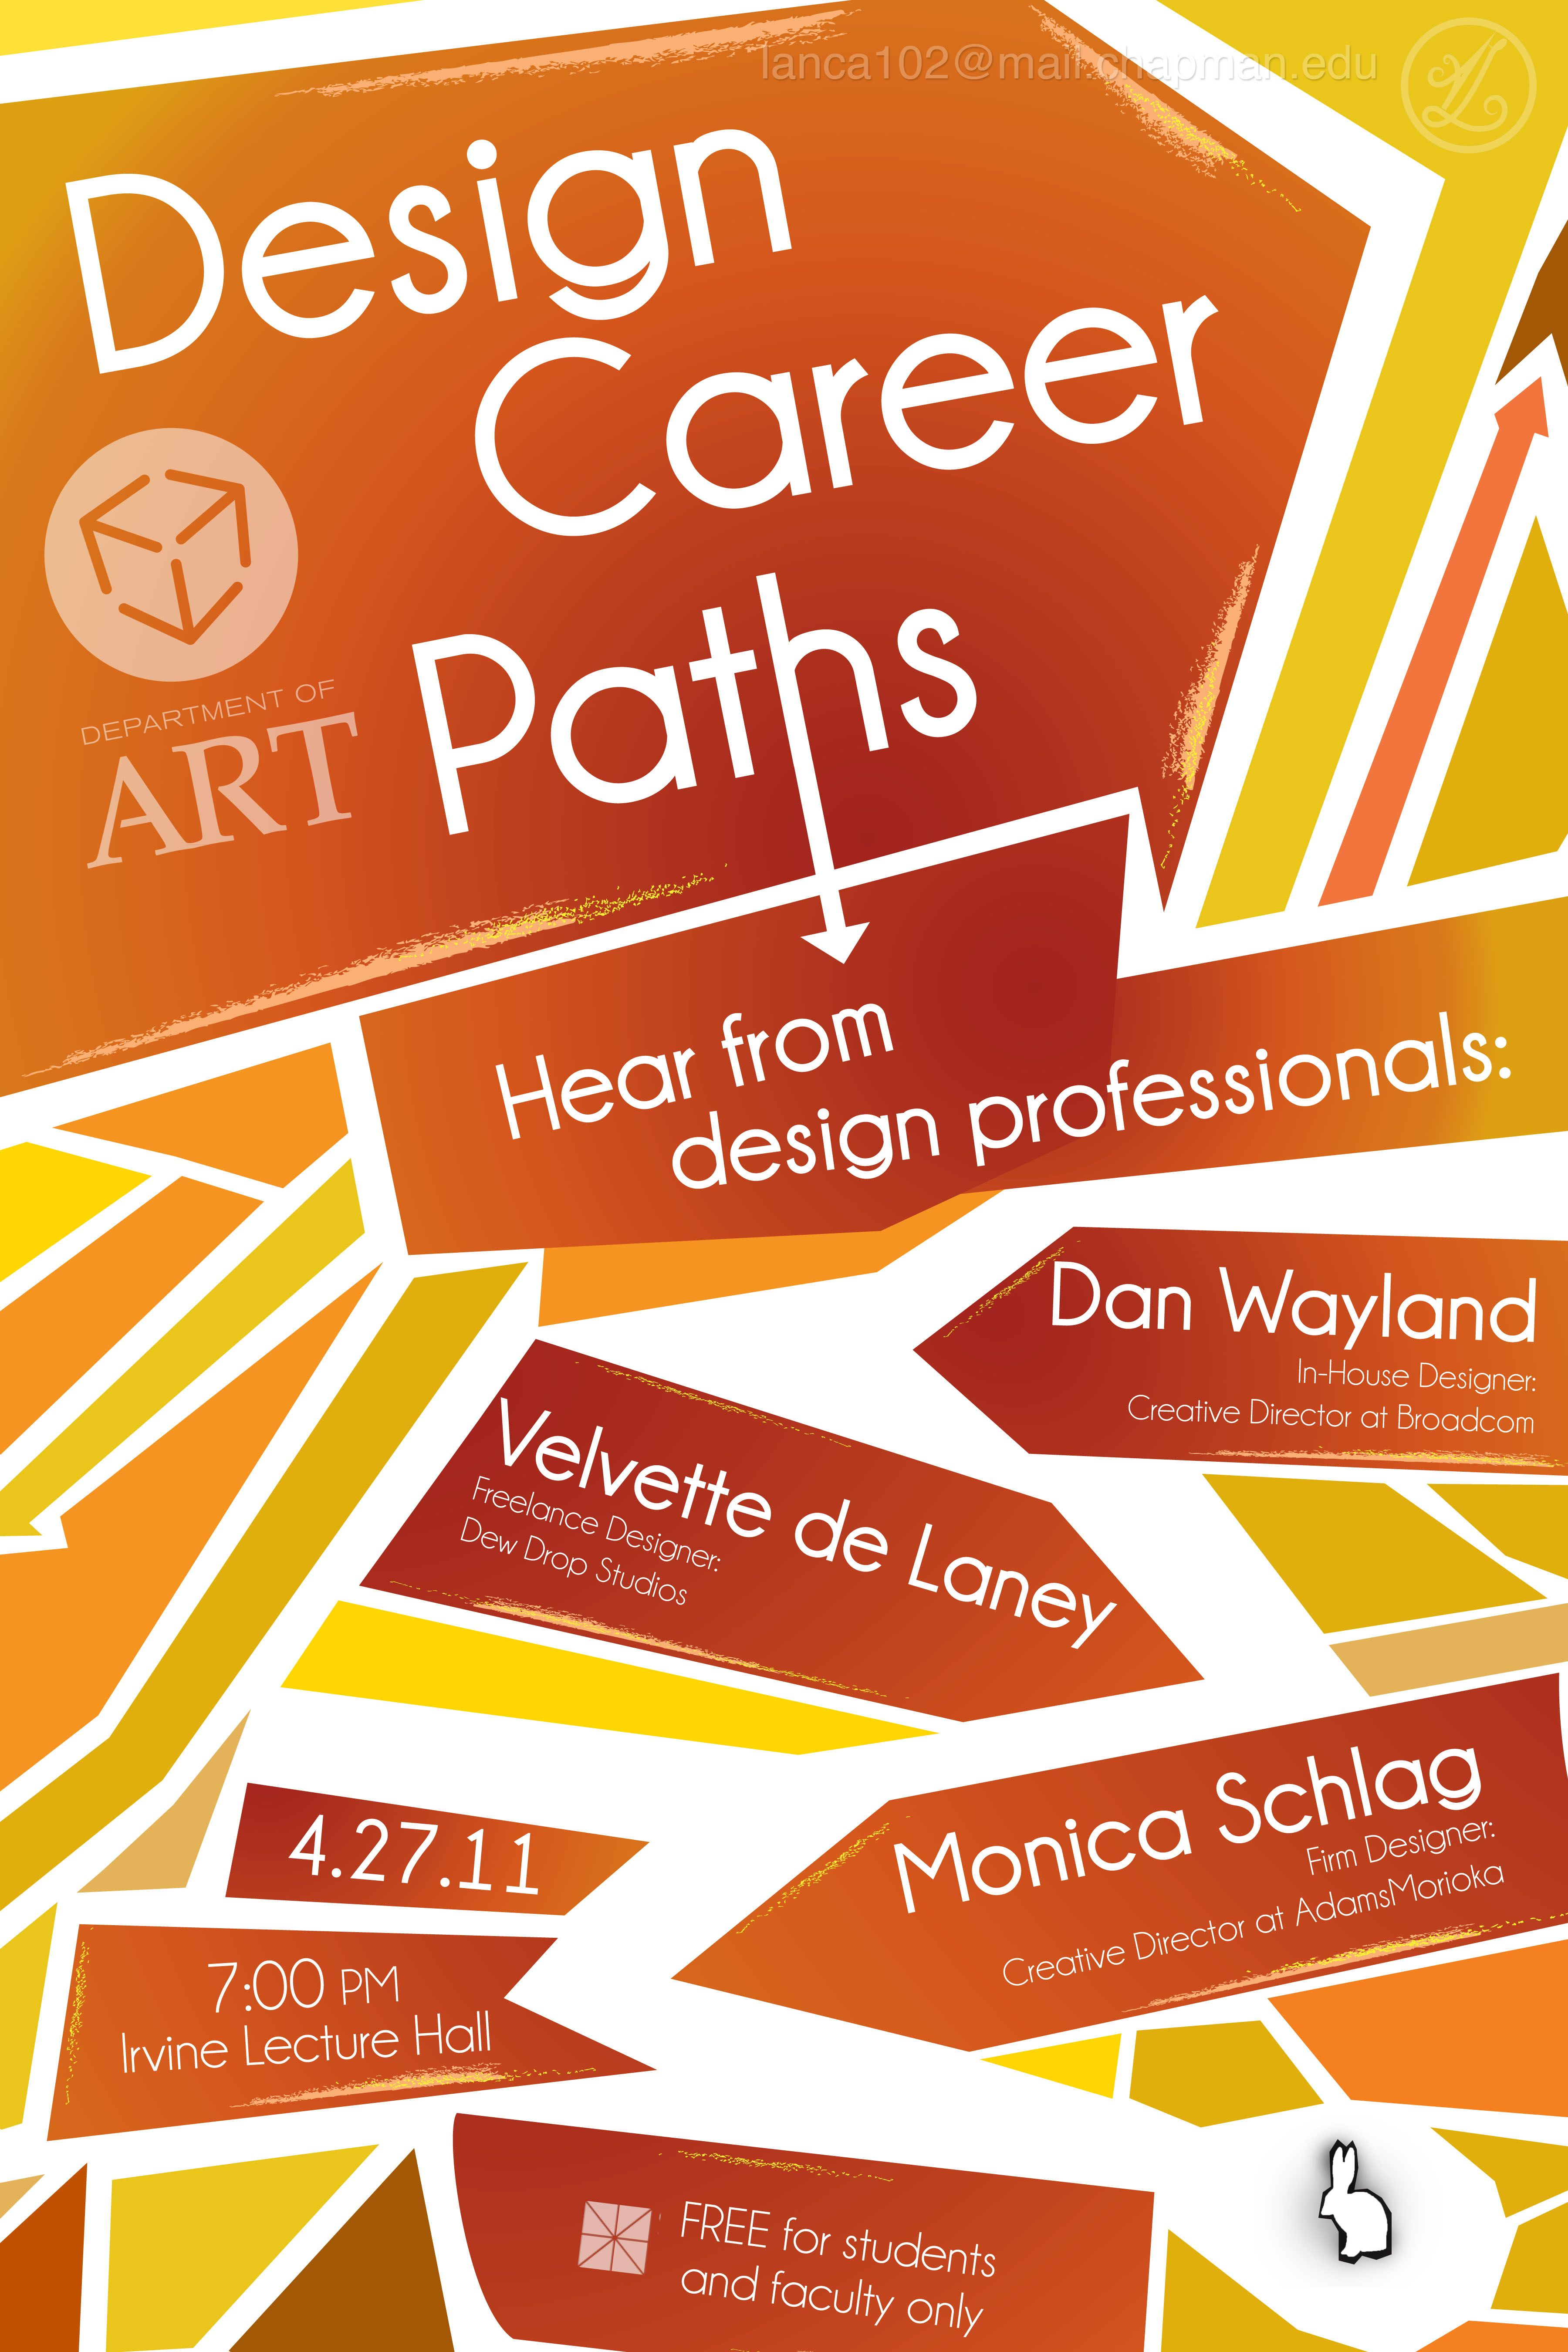 Poster design for events - Poster Design For Technical Events A Poster Design Advertising A Graphic Design Lecture Event At